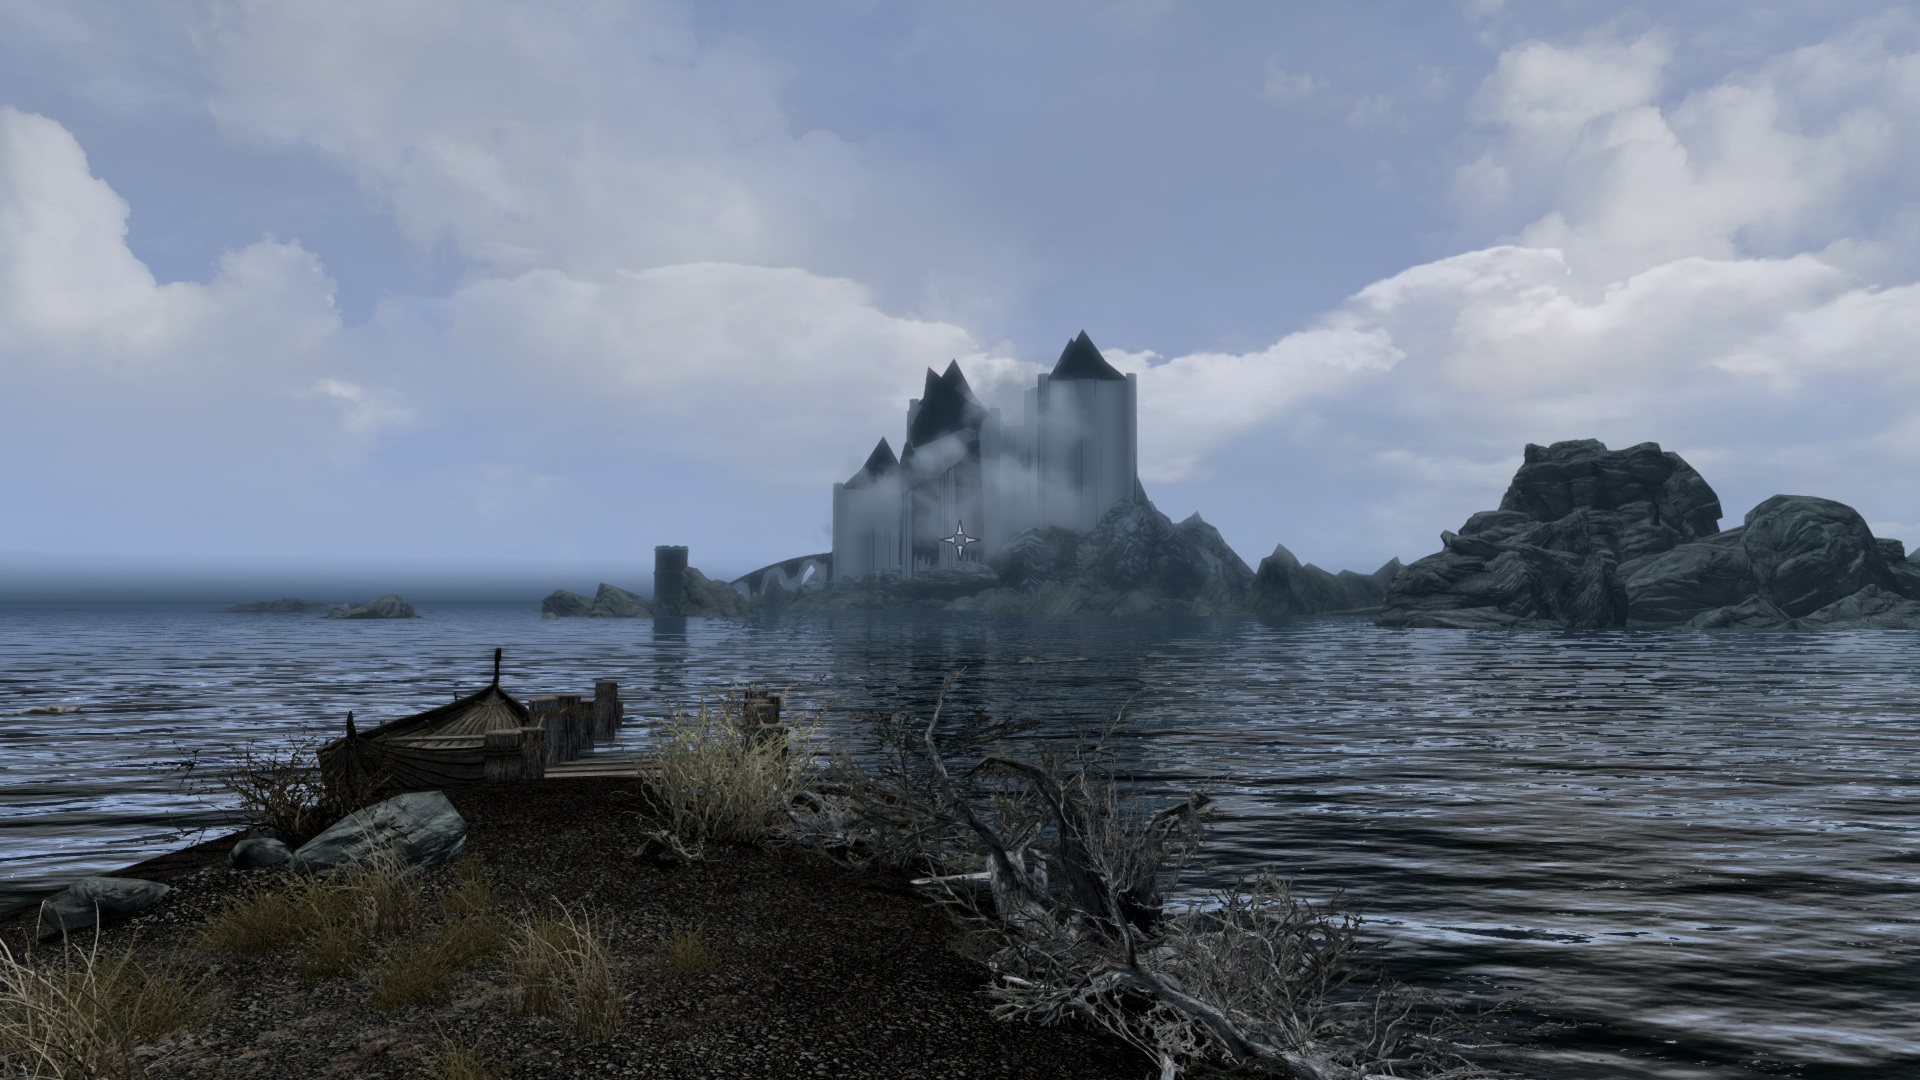 castle volkihar graphic bug - Skyrim Technical Support - The